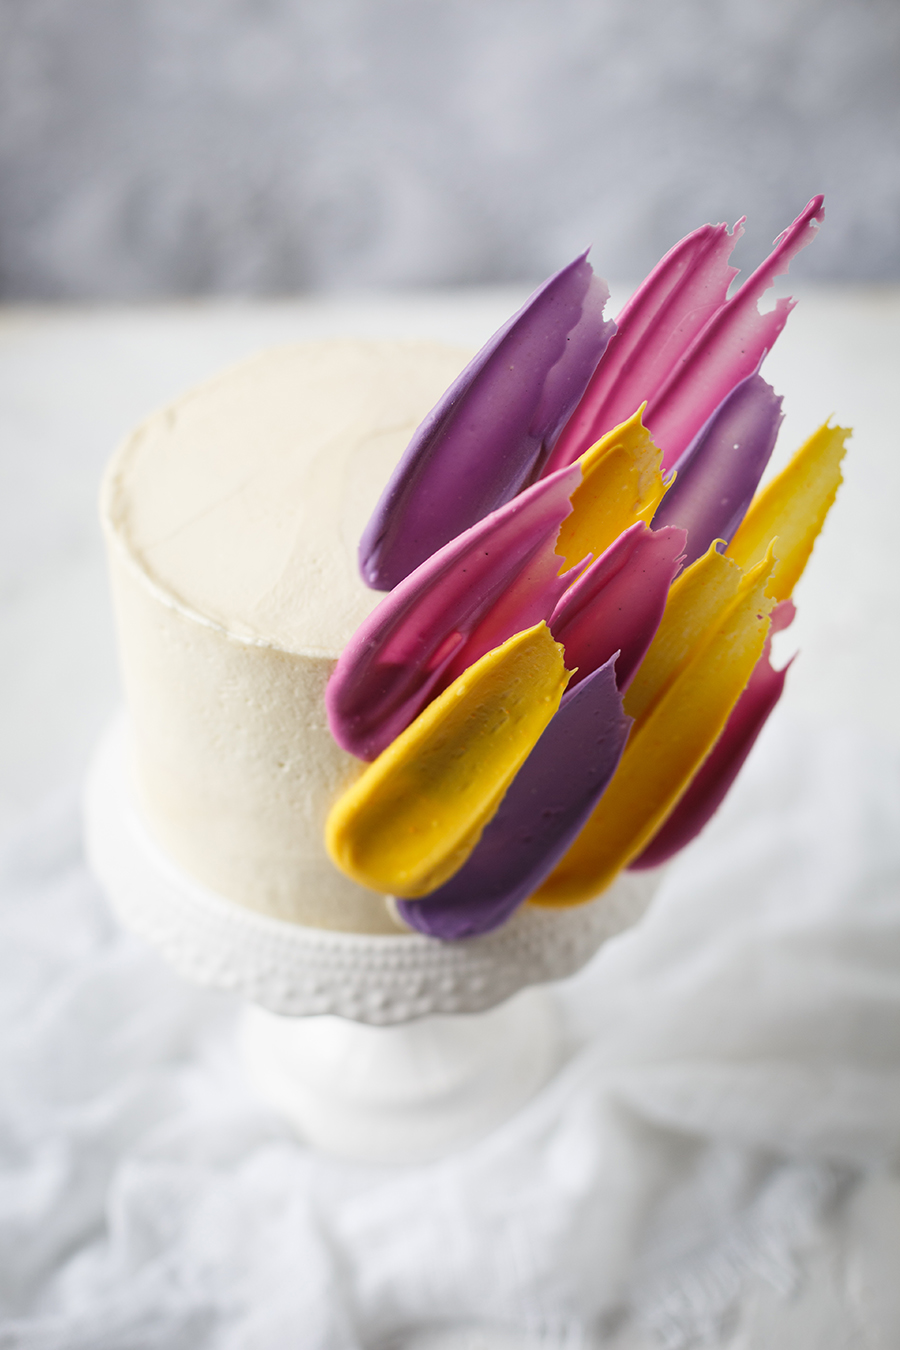 Image of a brushstroke cake - a white cake decorated with yellow, pink and purple chocoalte brushstrokes